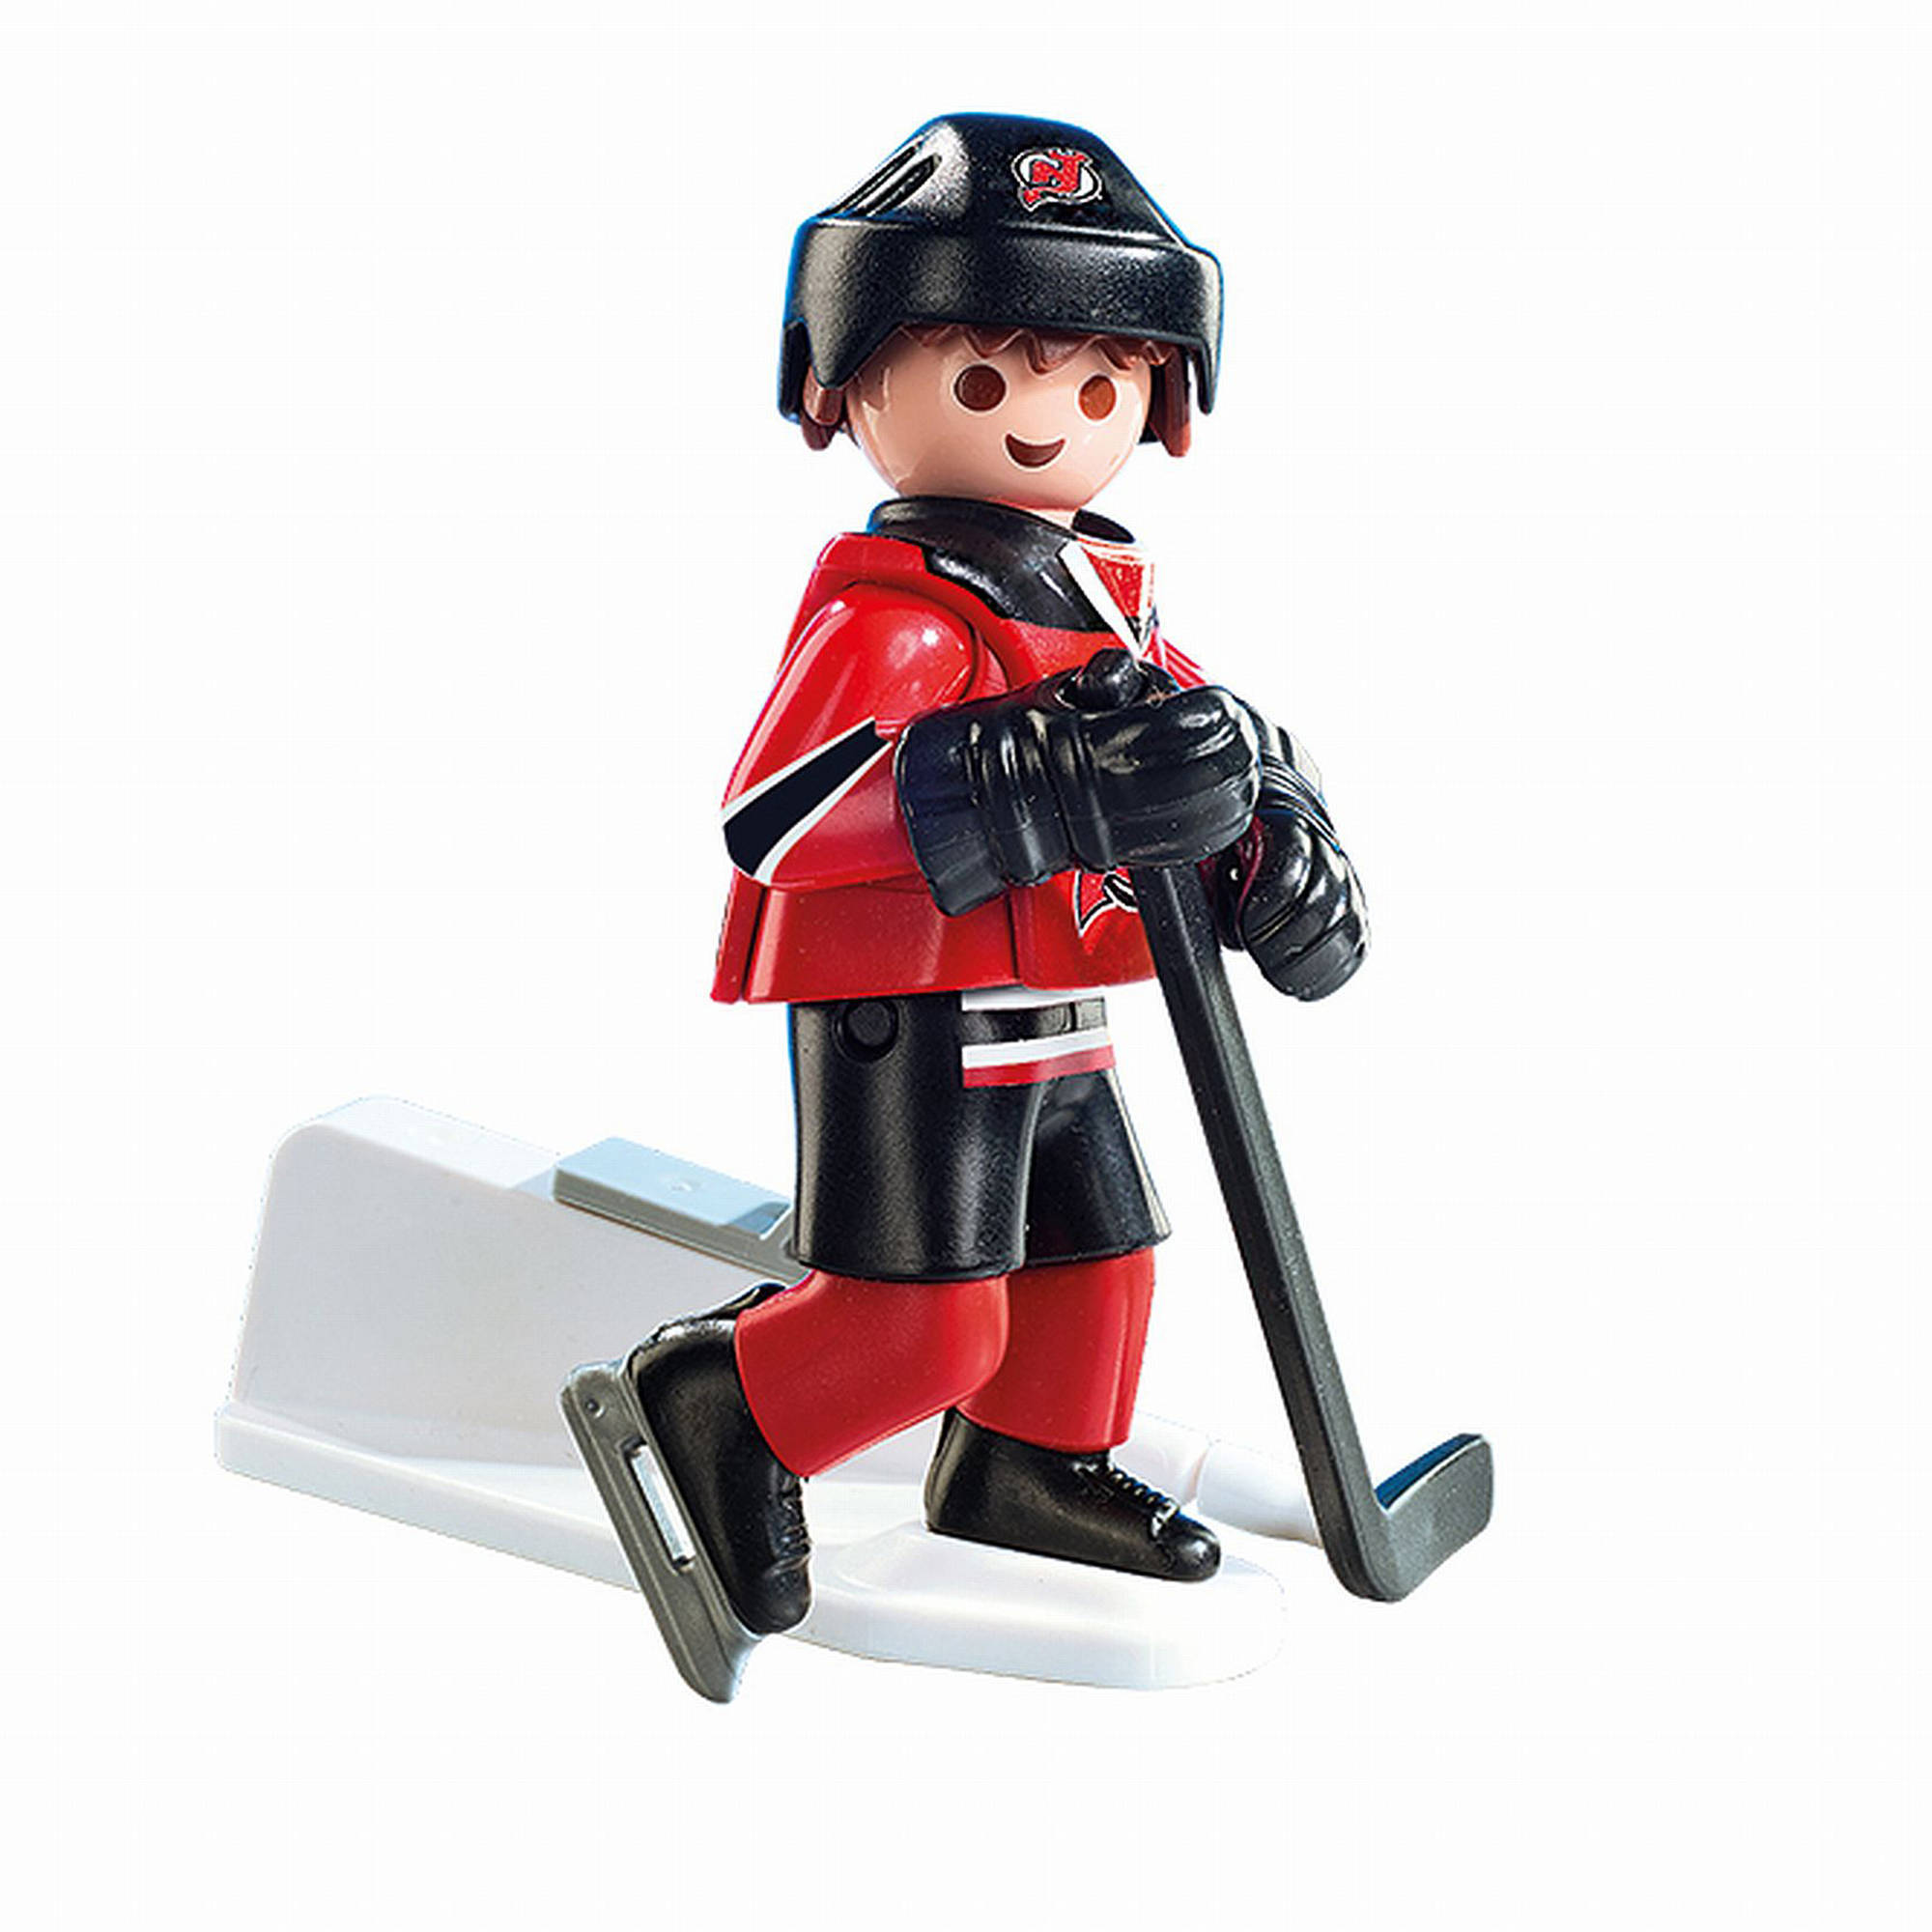 PLAYMOBIL NHL New Jersey Devils Player